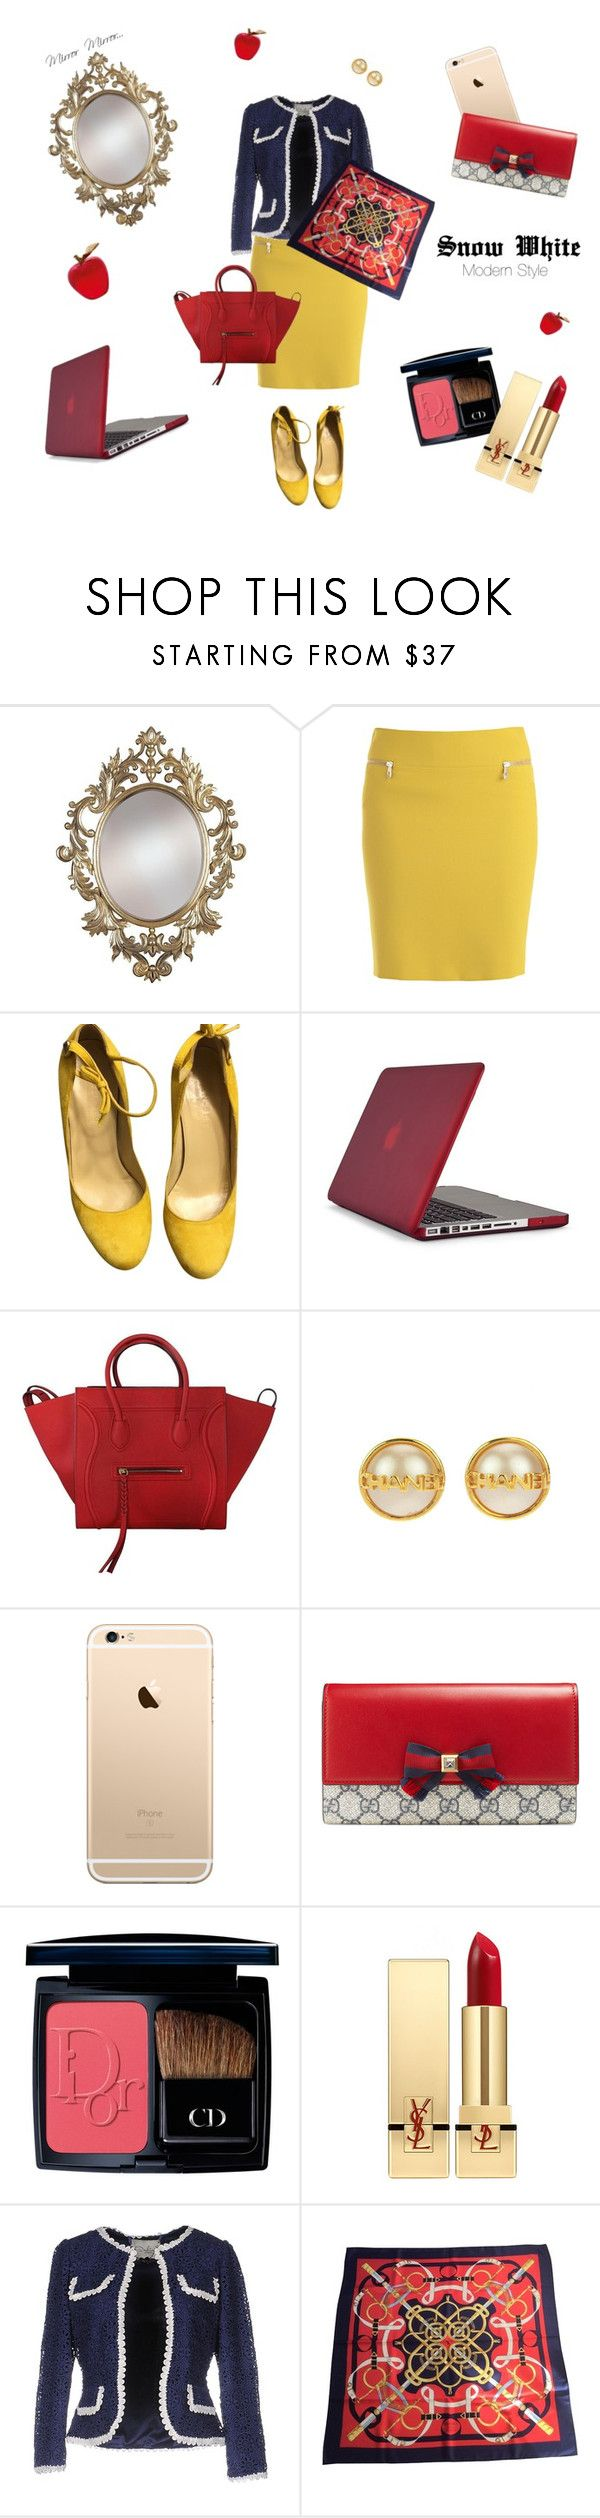 Snow White Office Style by miwandawanda on Polyvore featuring ファッション, Darling, Versace, Speck, Gucci, CÉLINE, Chanel, Hermès, Christian Dior and Yves Saint Laurent